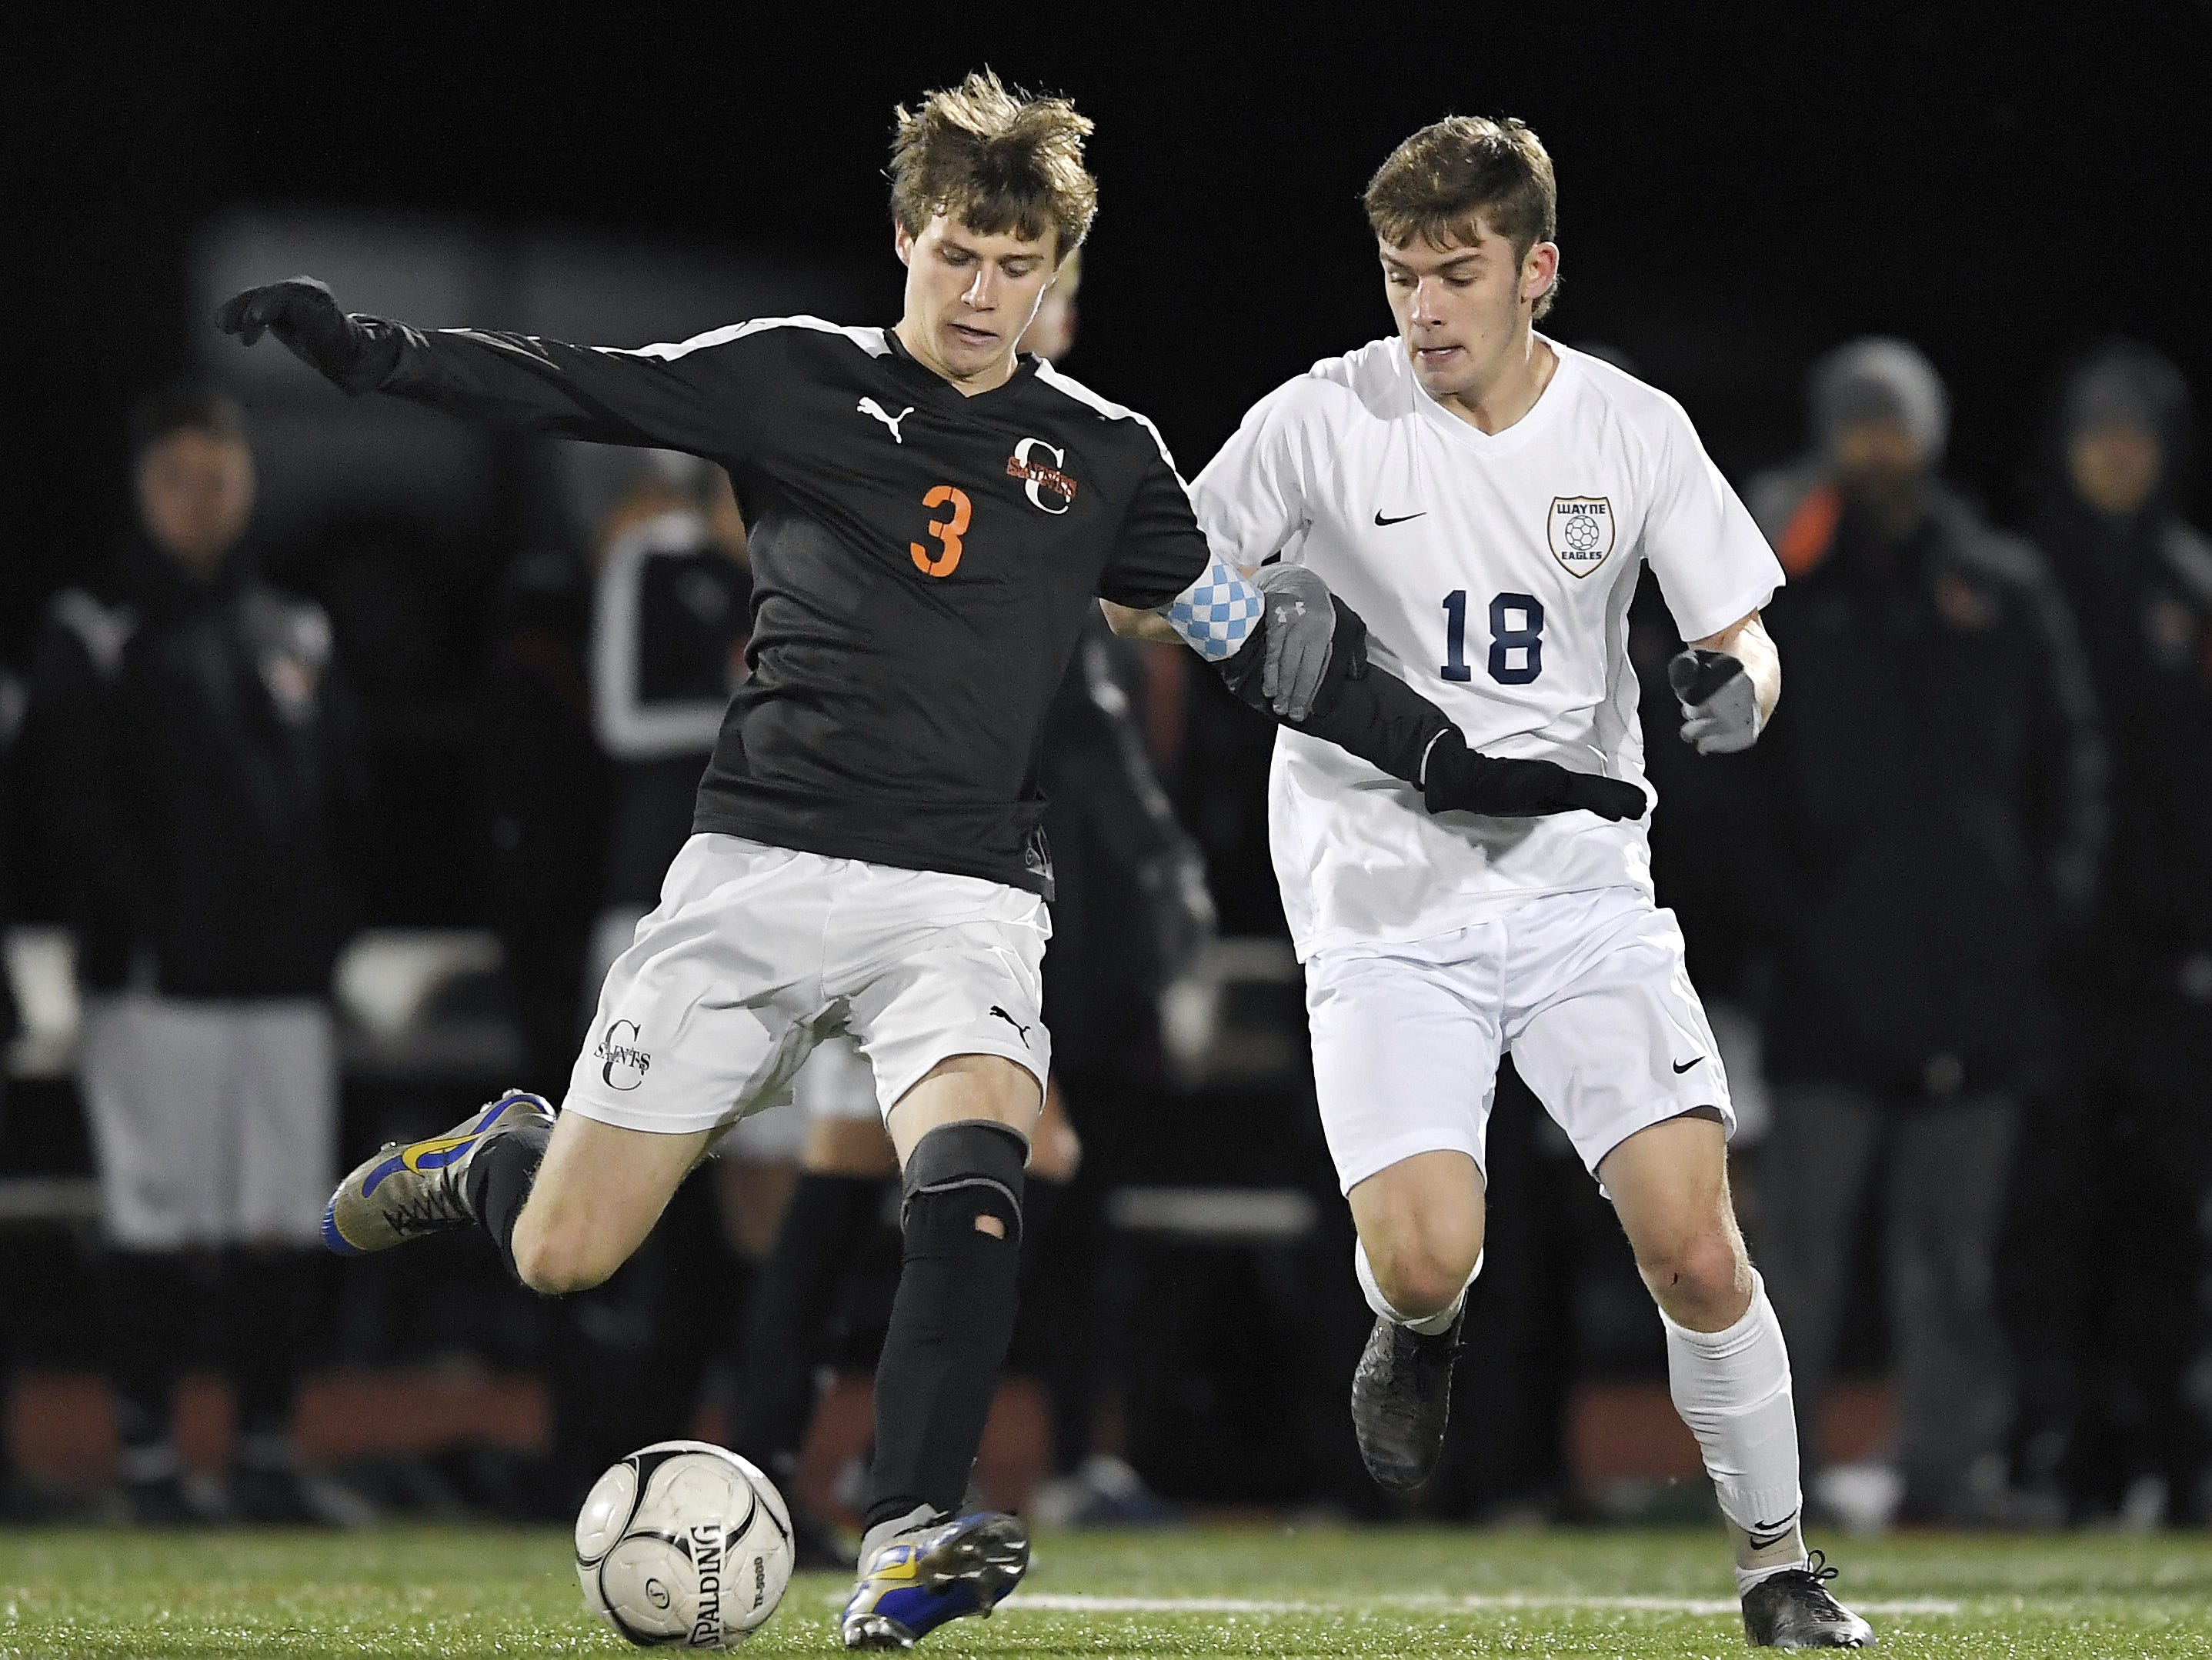 Churchville-Chili's Colby Egan, left, shields the ball from Wayne's Devin LaDue during a Class A sectional semifinal played at Hilton High School, Friday, Oct. 26, 2018.